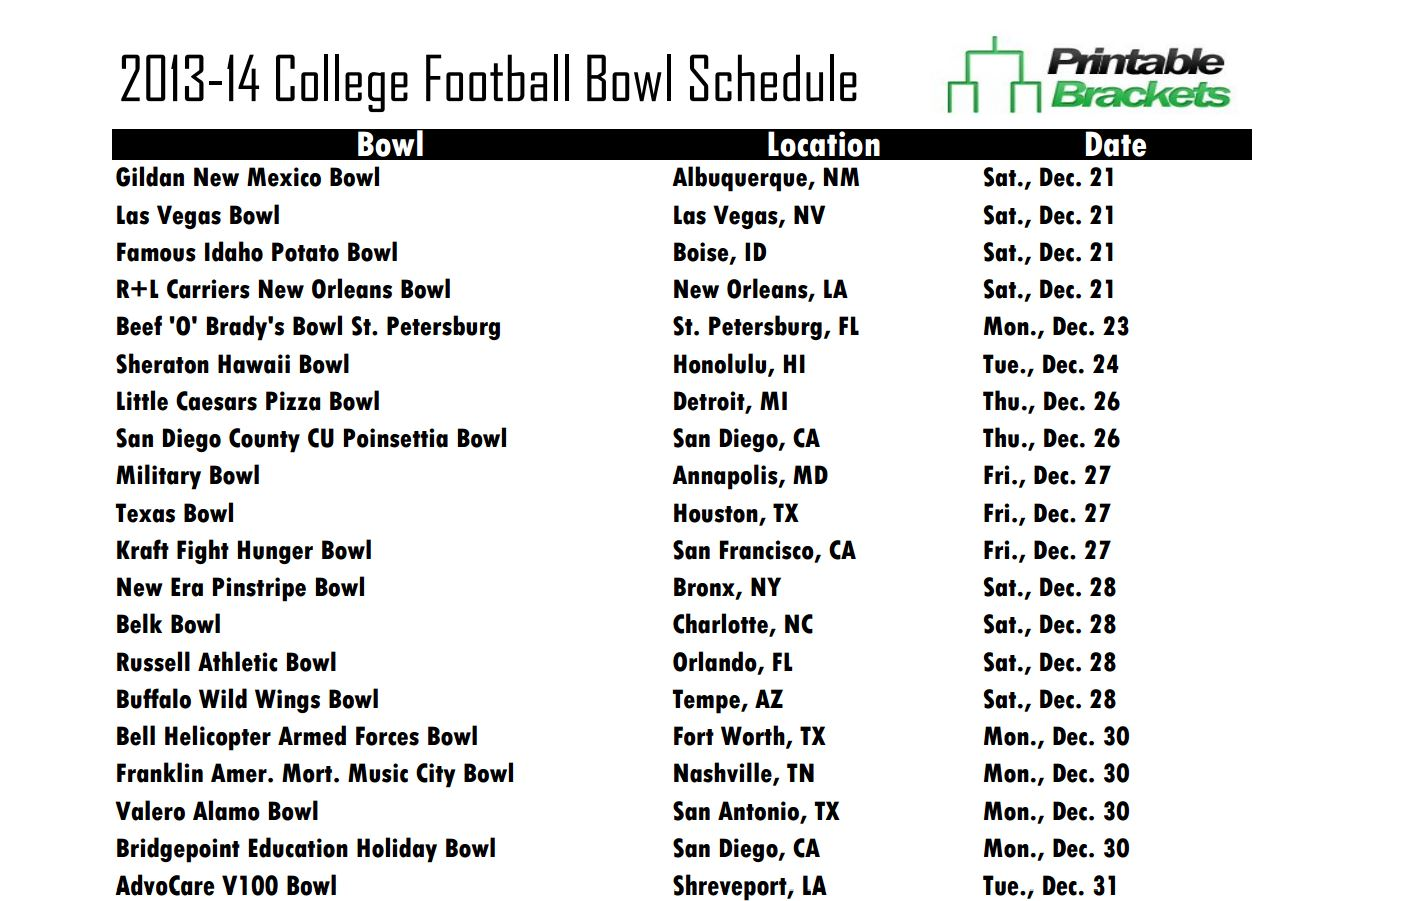 College Football Bowl Schedule Printable